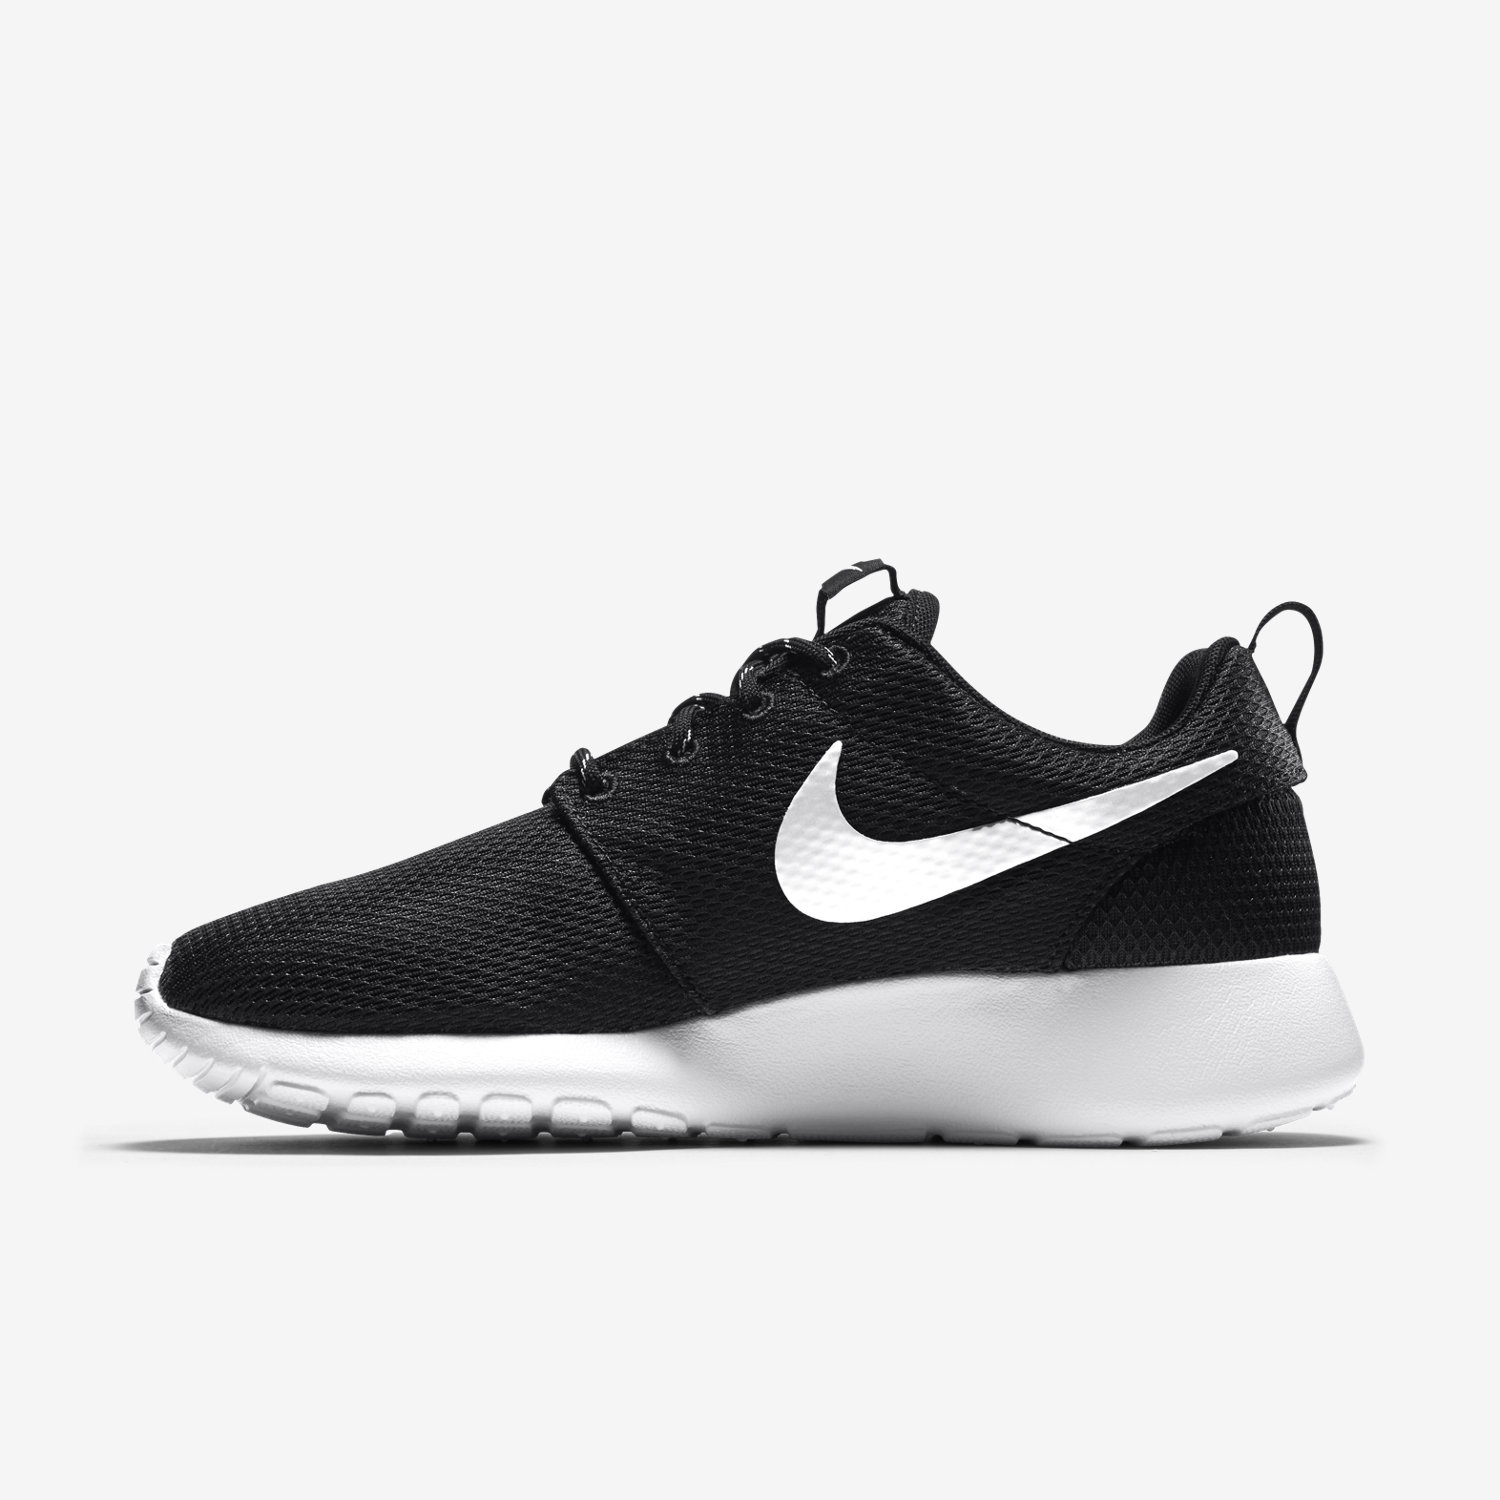 Nike Womens Extra Wide Shoes Black